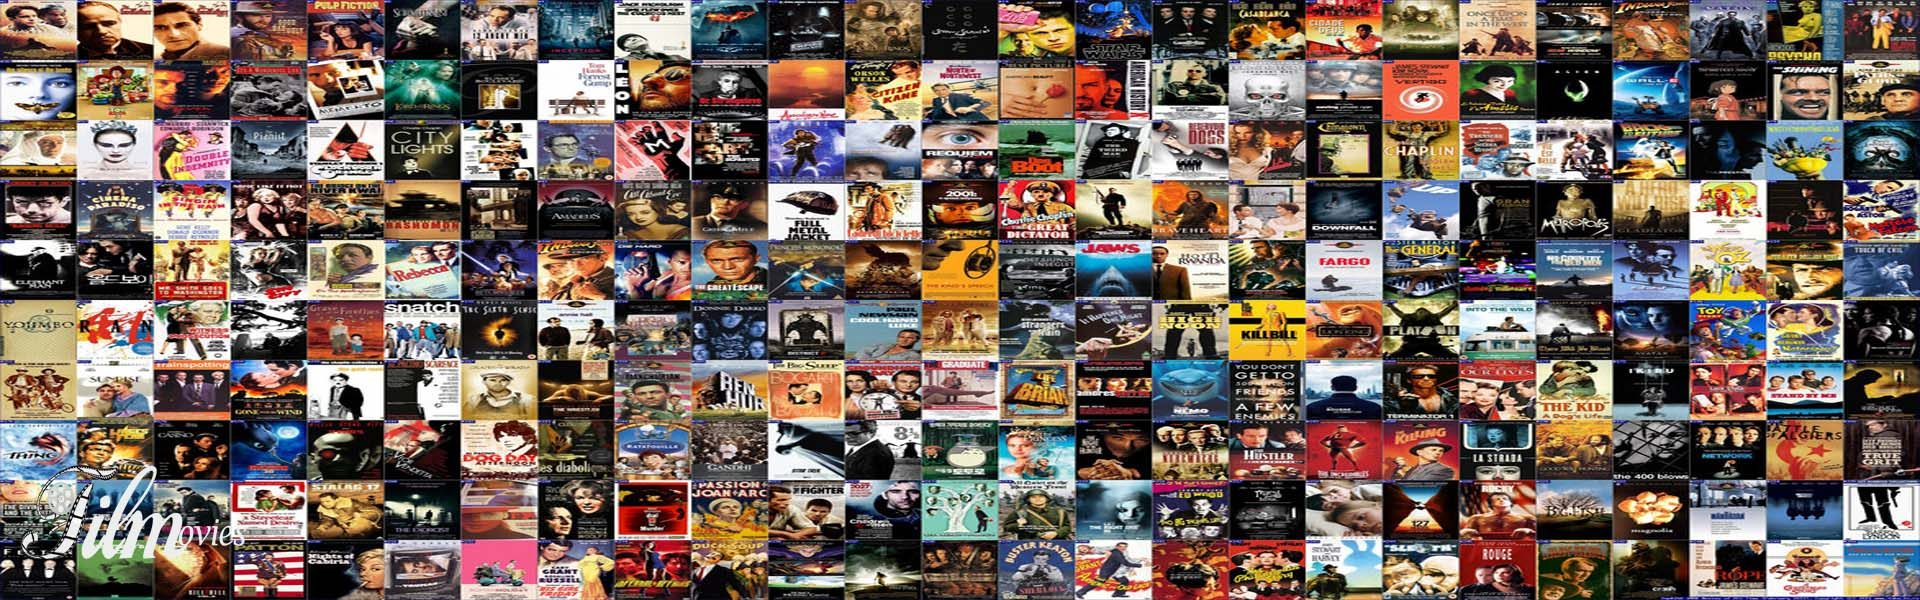 top 250 movies